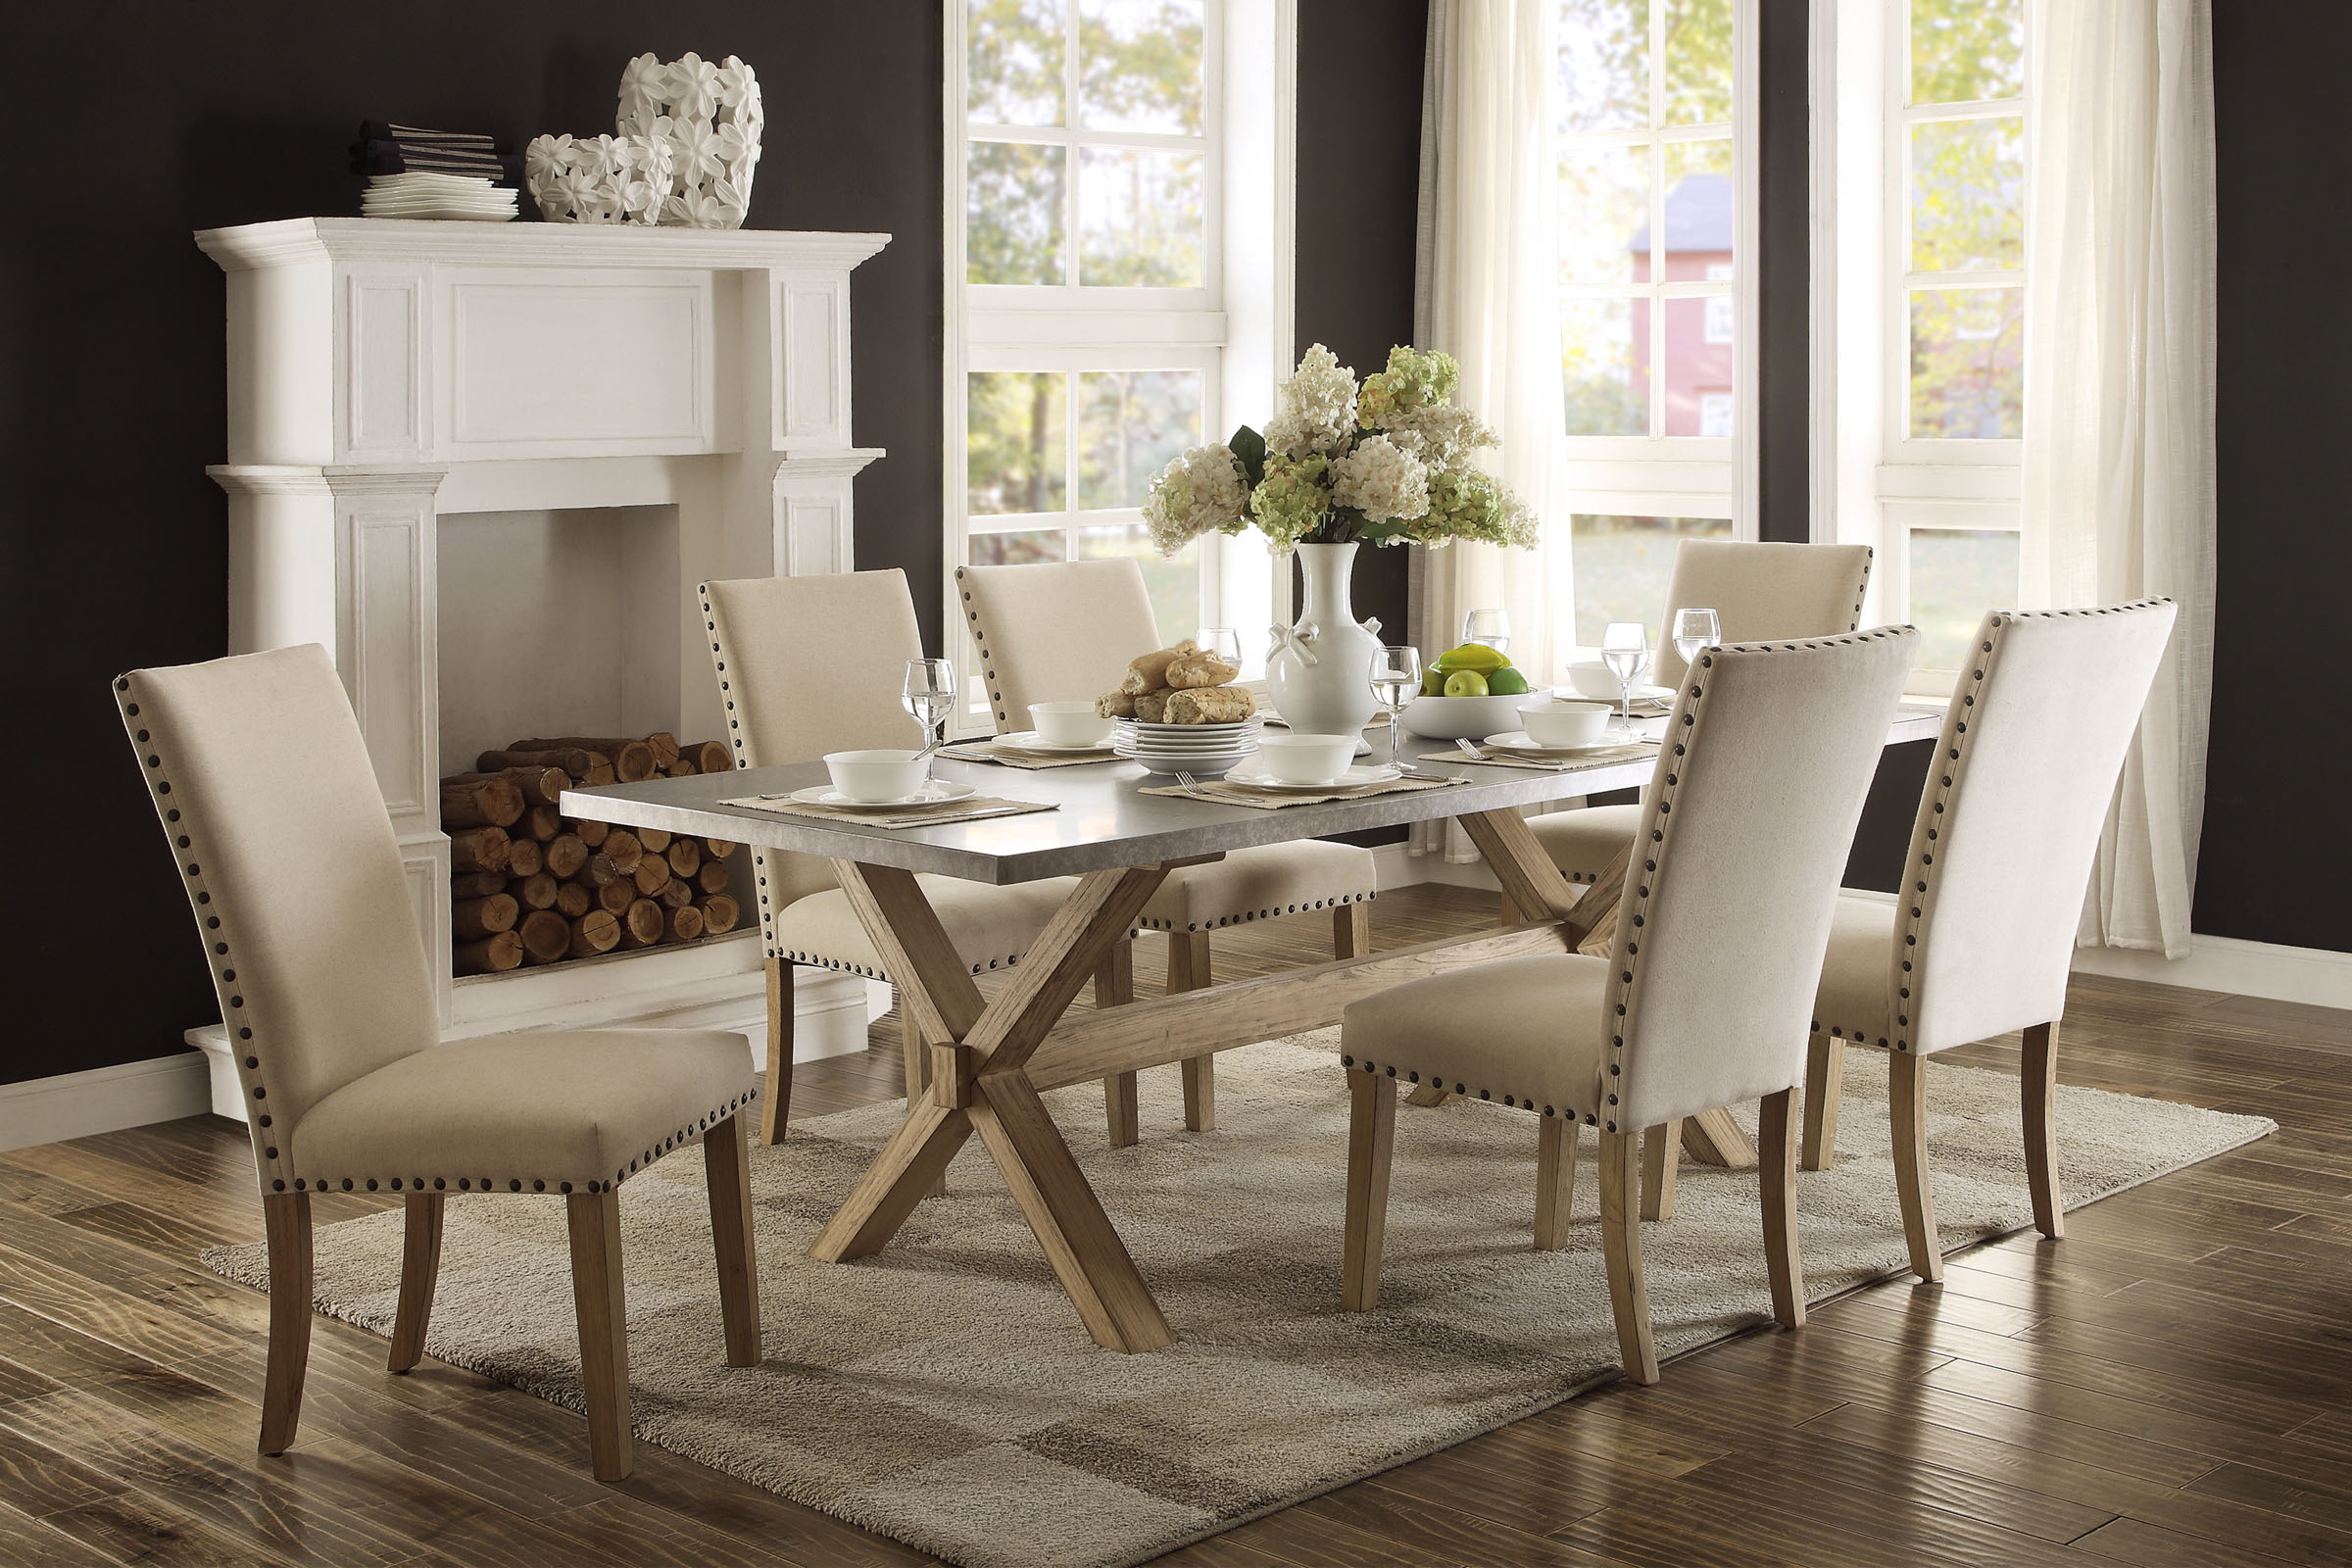 Nolan Dining Set With 6 Chairs Throughout Most Recent Nolan Round Pedestal Dining Tables (View 21 of 25)